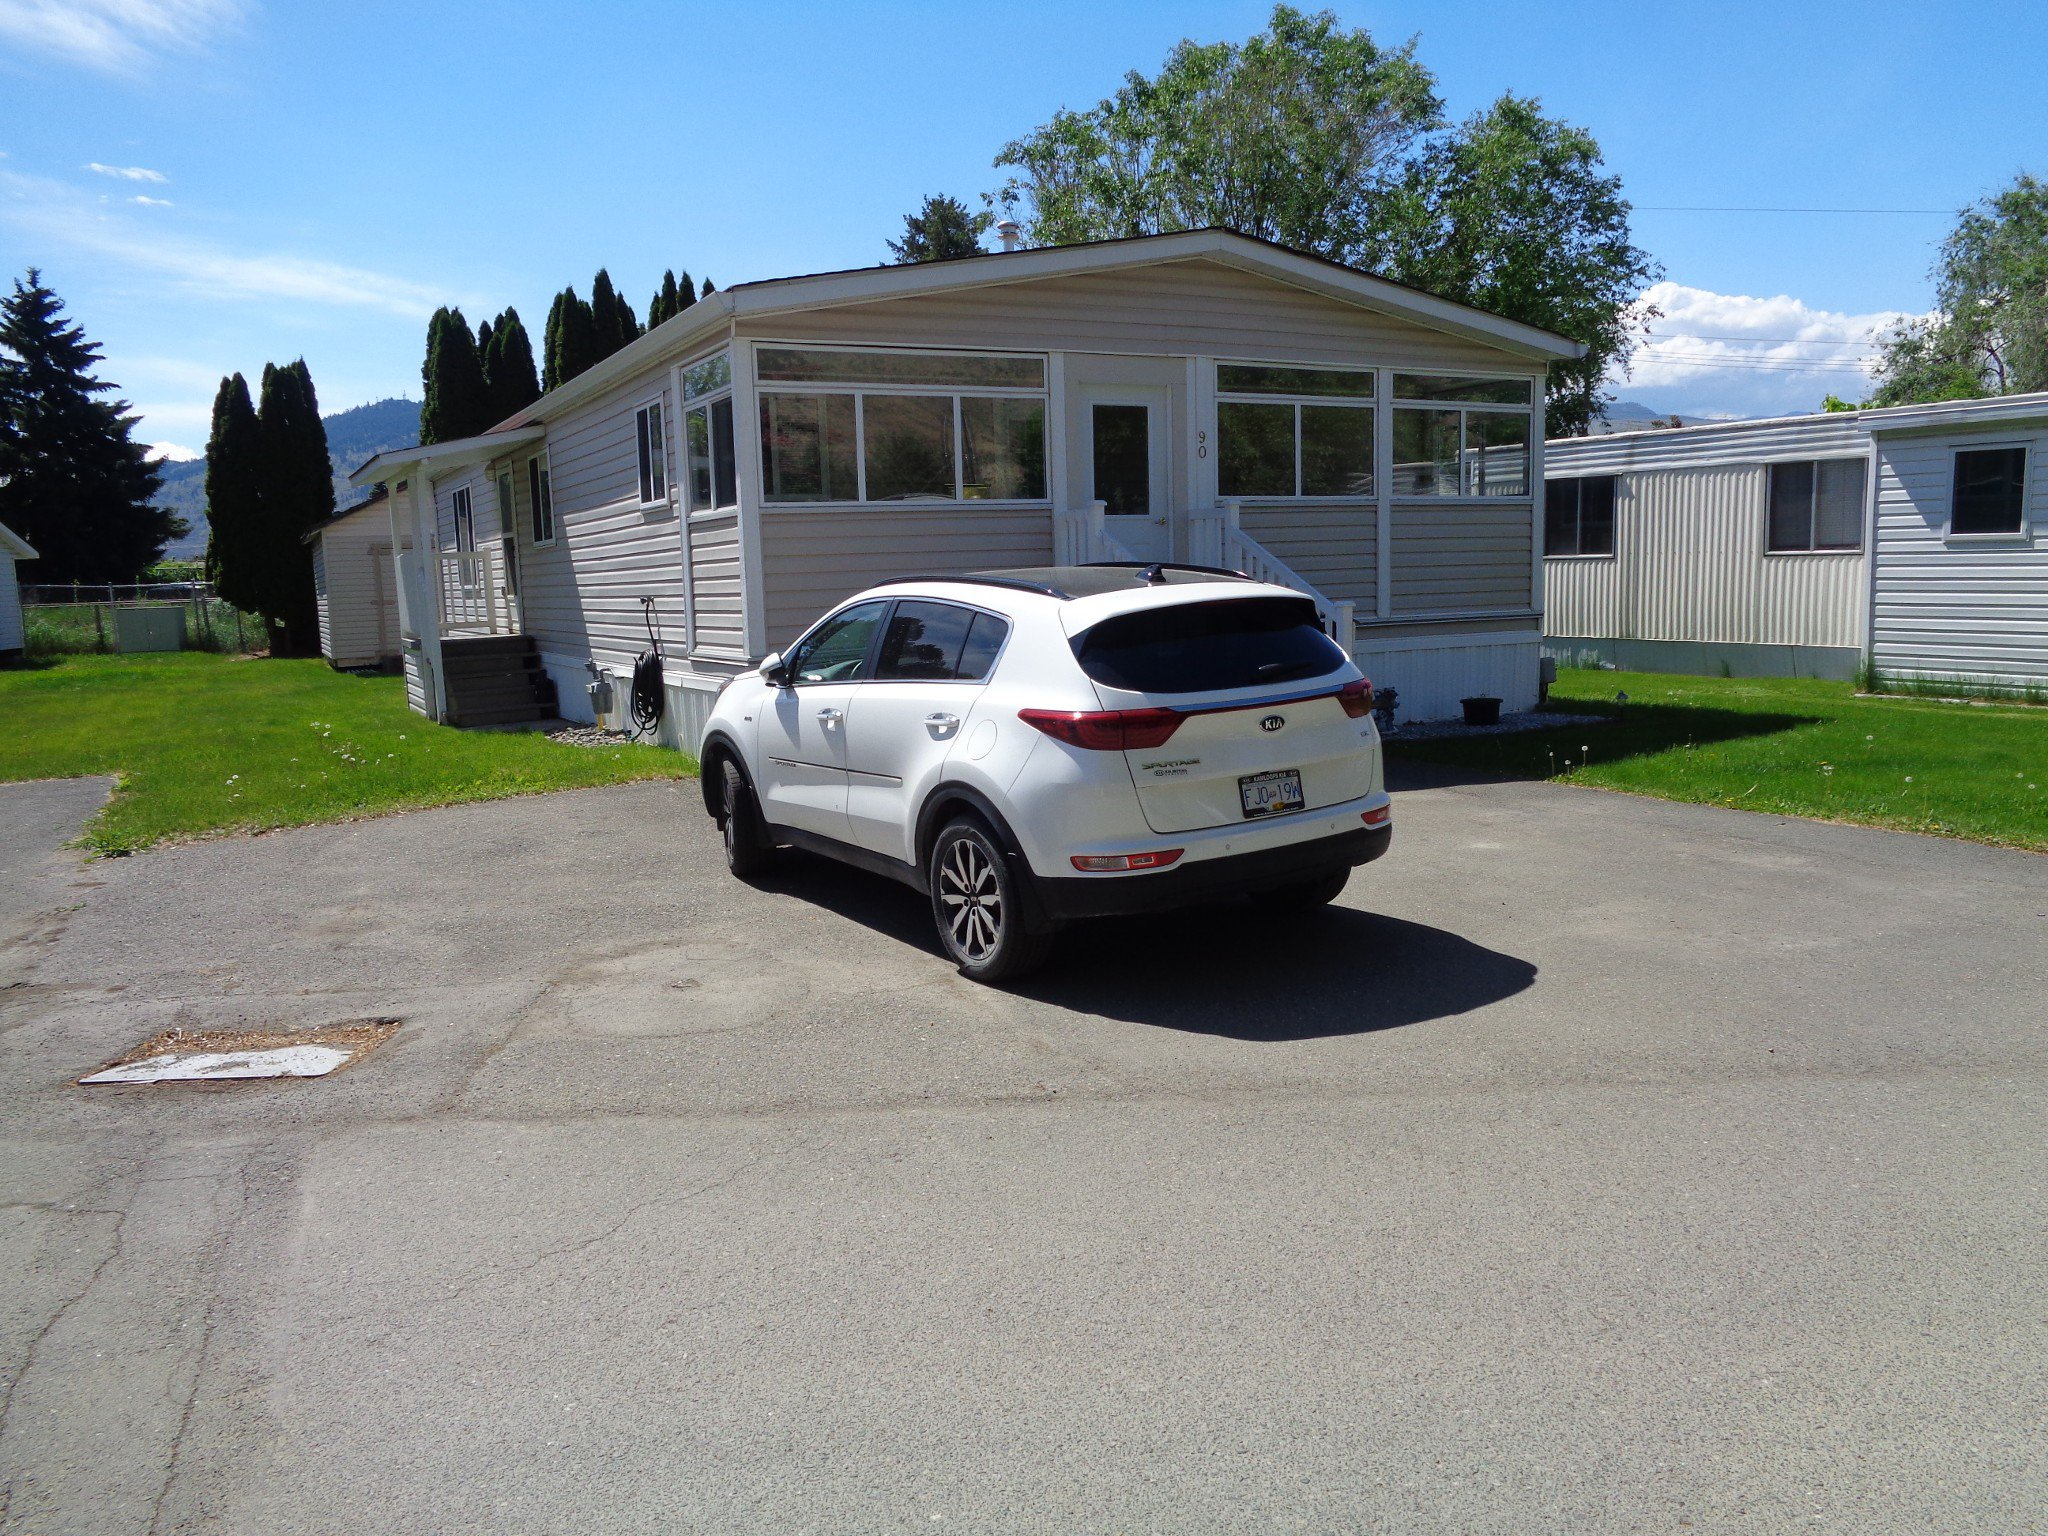 Main Photo: 90-2401 ORD ROAD in KAMLOOPS: BROCKLEHURST Manufactured Home for sale : MLS®# 151501